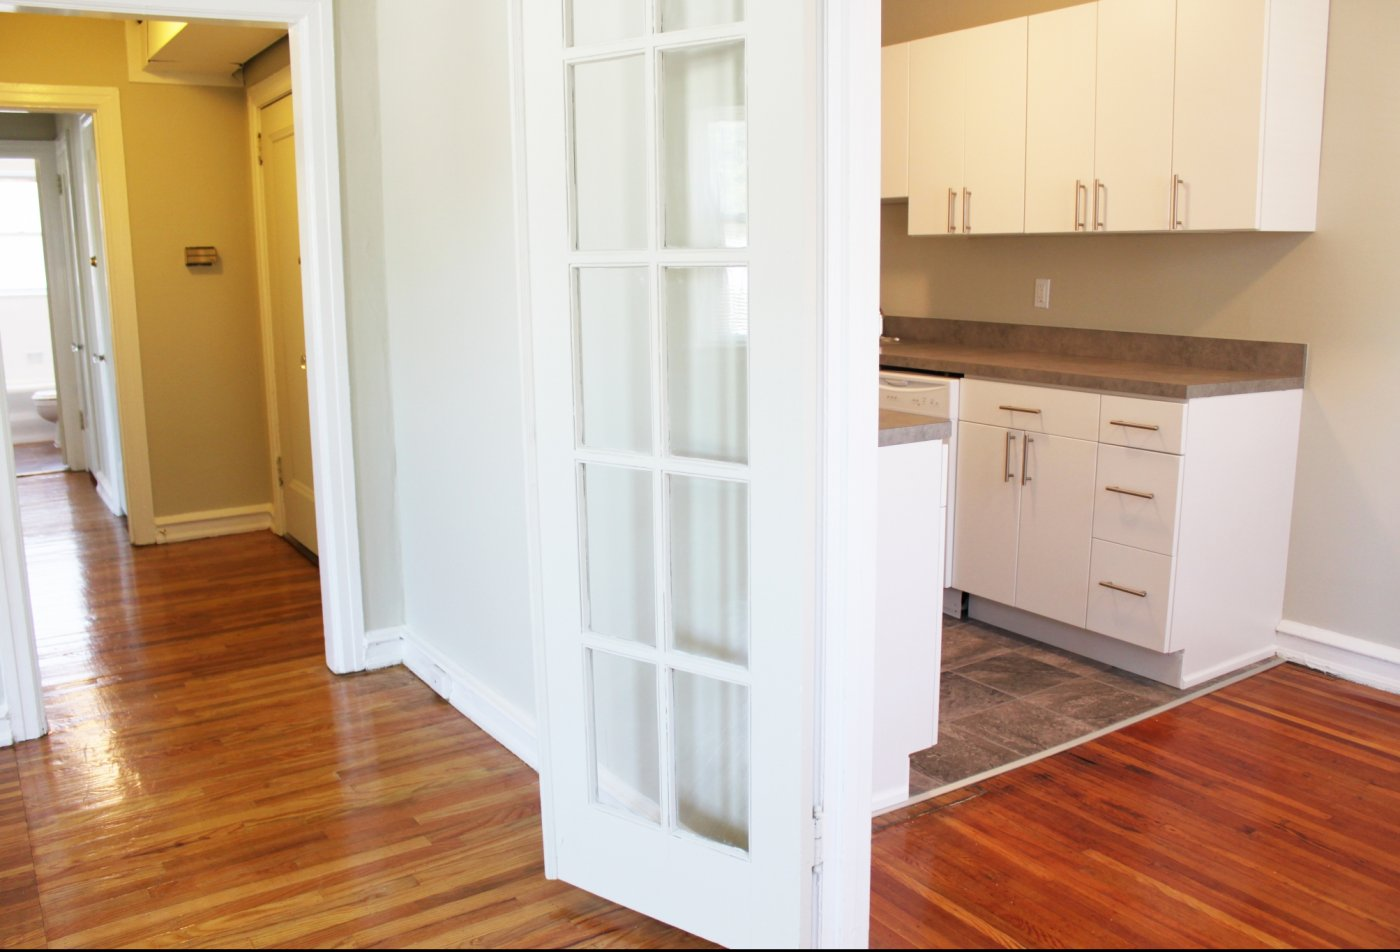 State-of-the-Art Kitchen | Ardmore PA Apartment Homes | Suburban Court Apartments